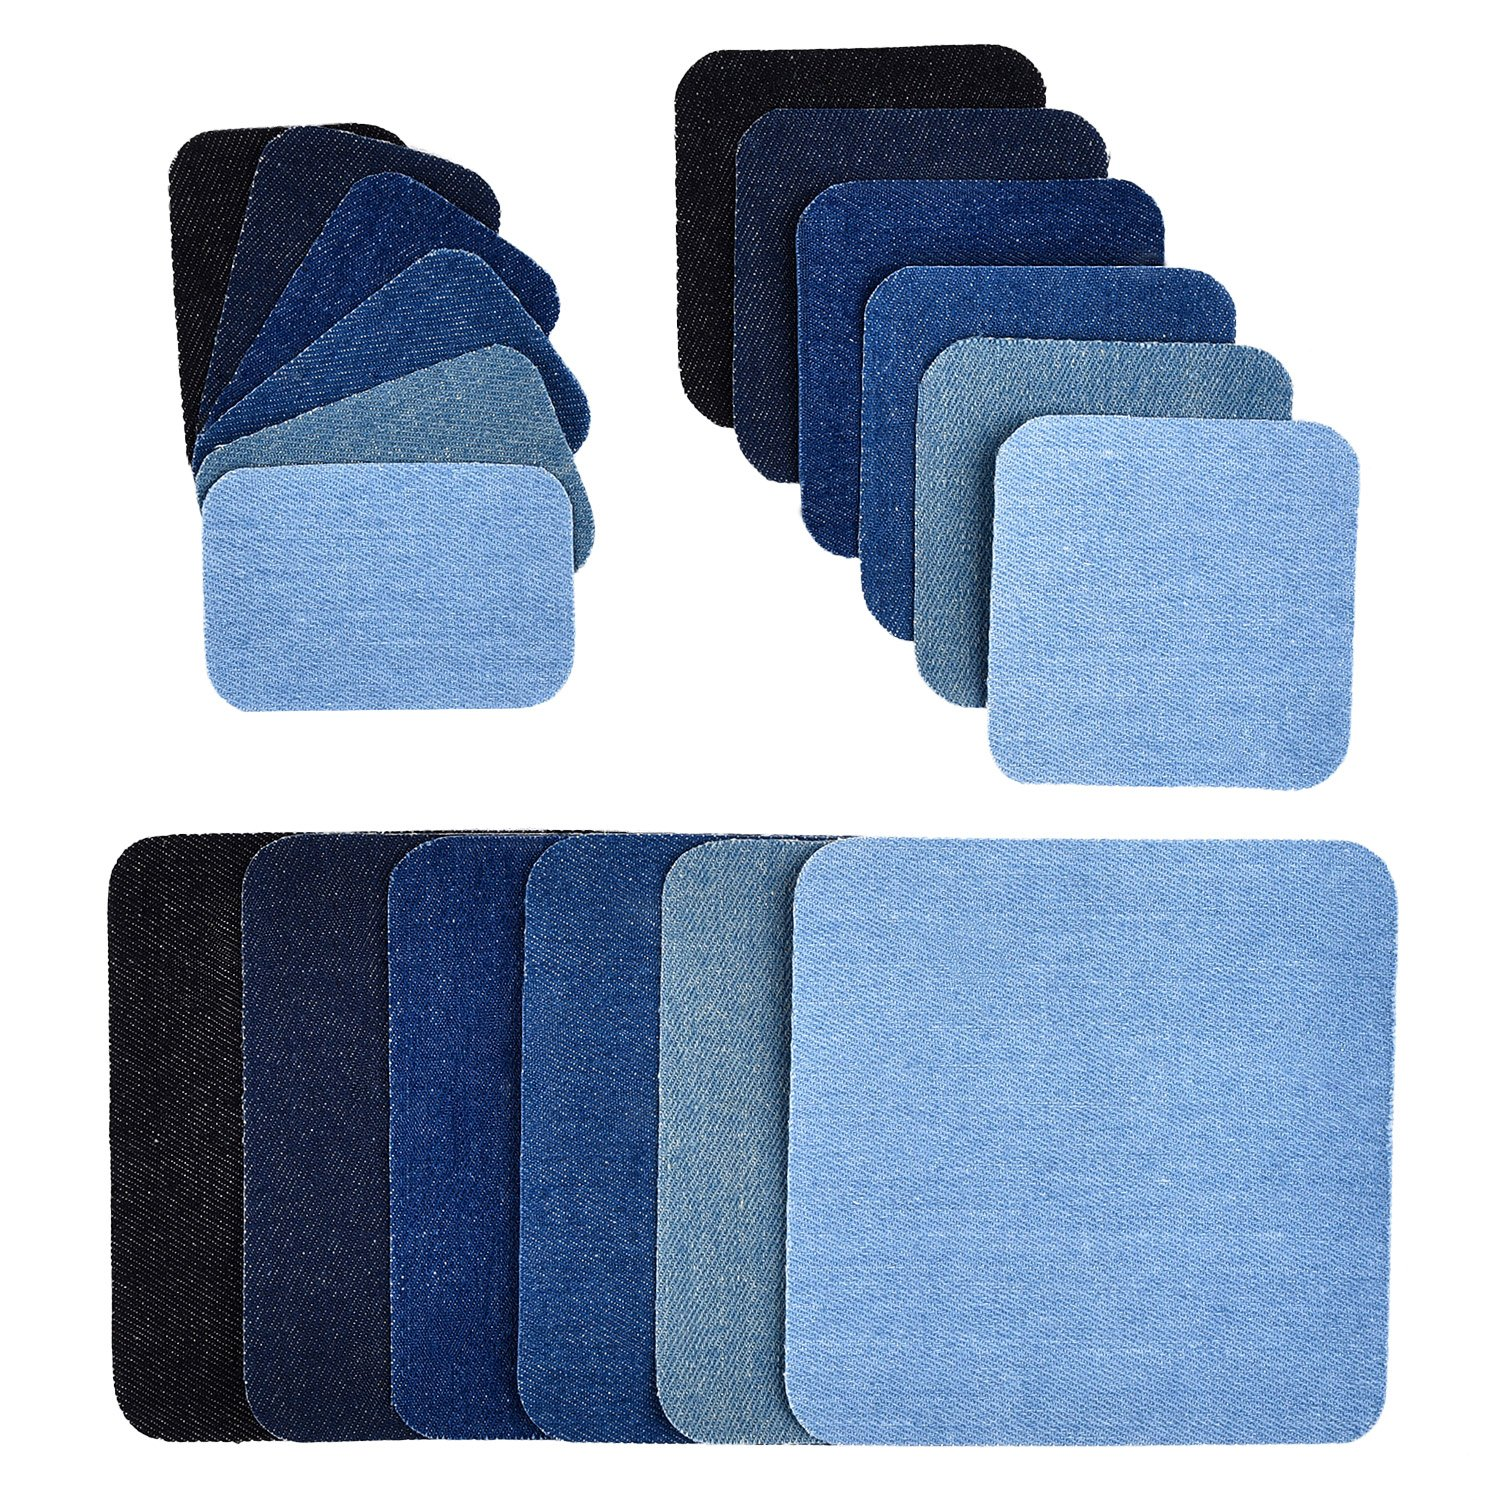 eBoot 18 Pieces 6 Colors Iron on Patches Denim Cotton Patches Iron-on Repair Kit, 3 Size (5 x 5 Inch, 3 x 3 Inch, 2 x 3 Inch)